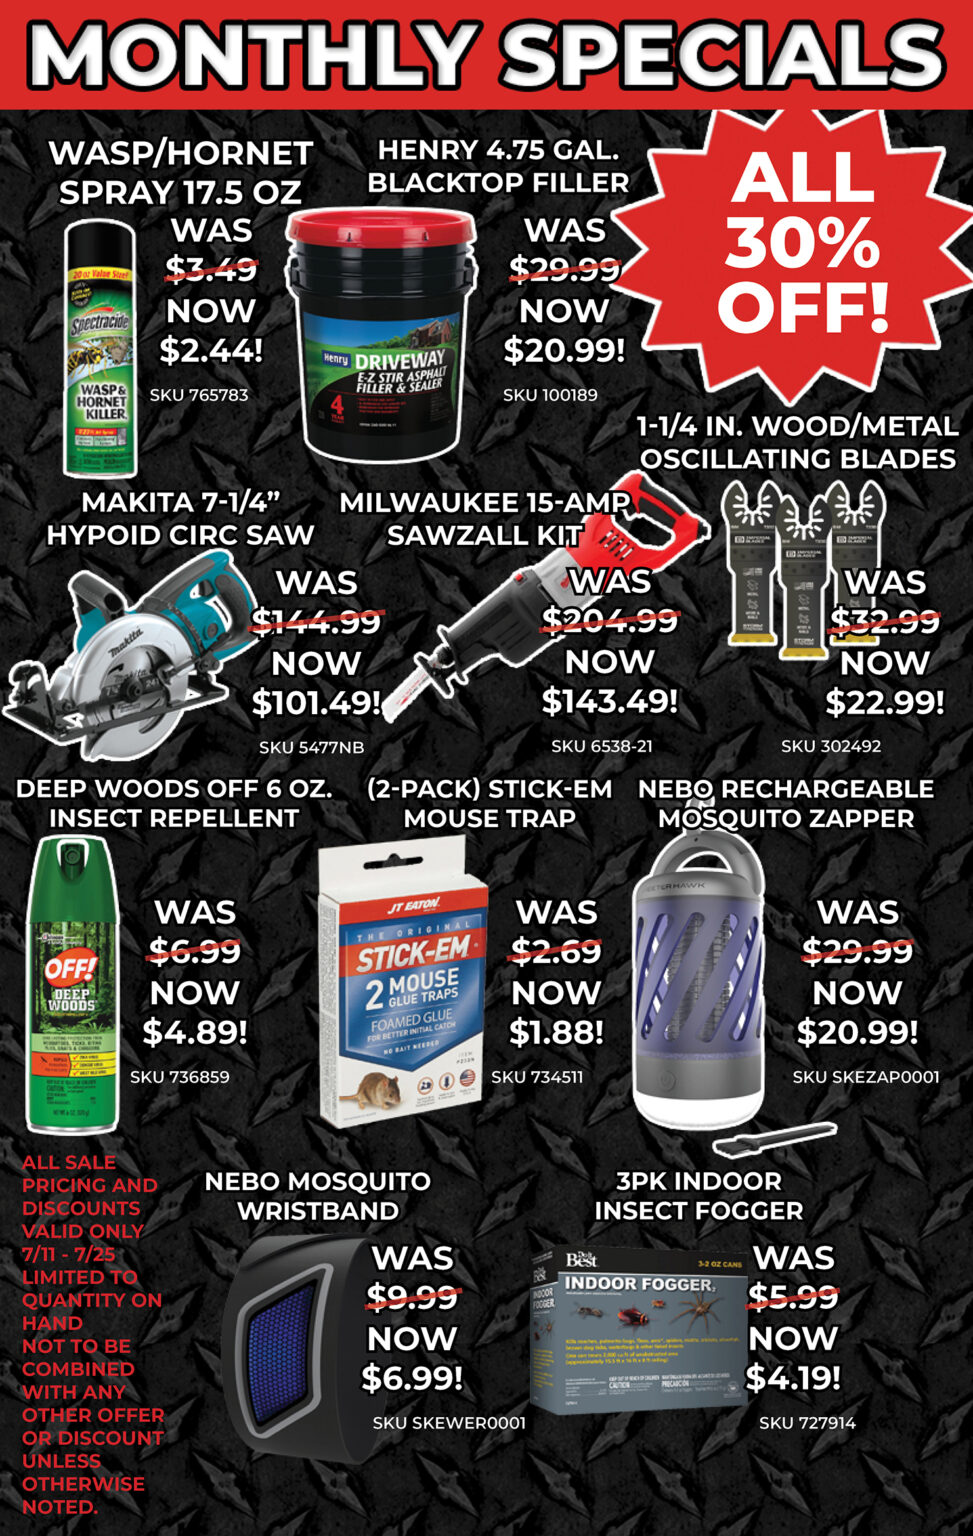 JULY SPECIALS PRODUCT LISTS